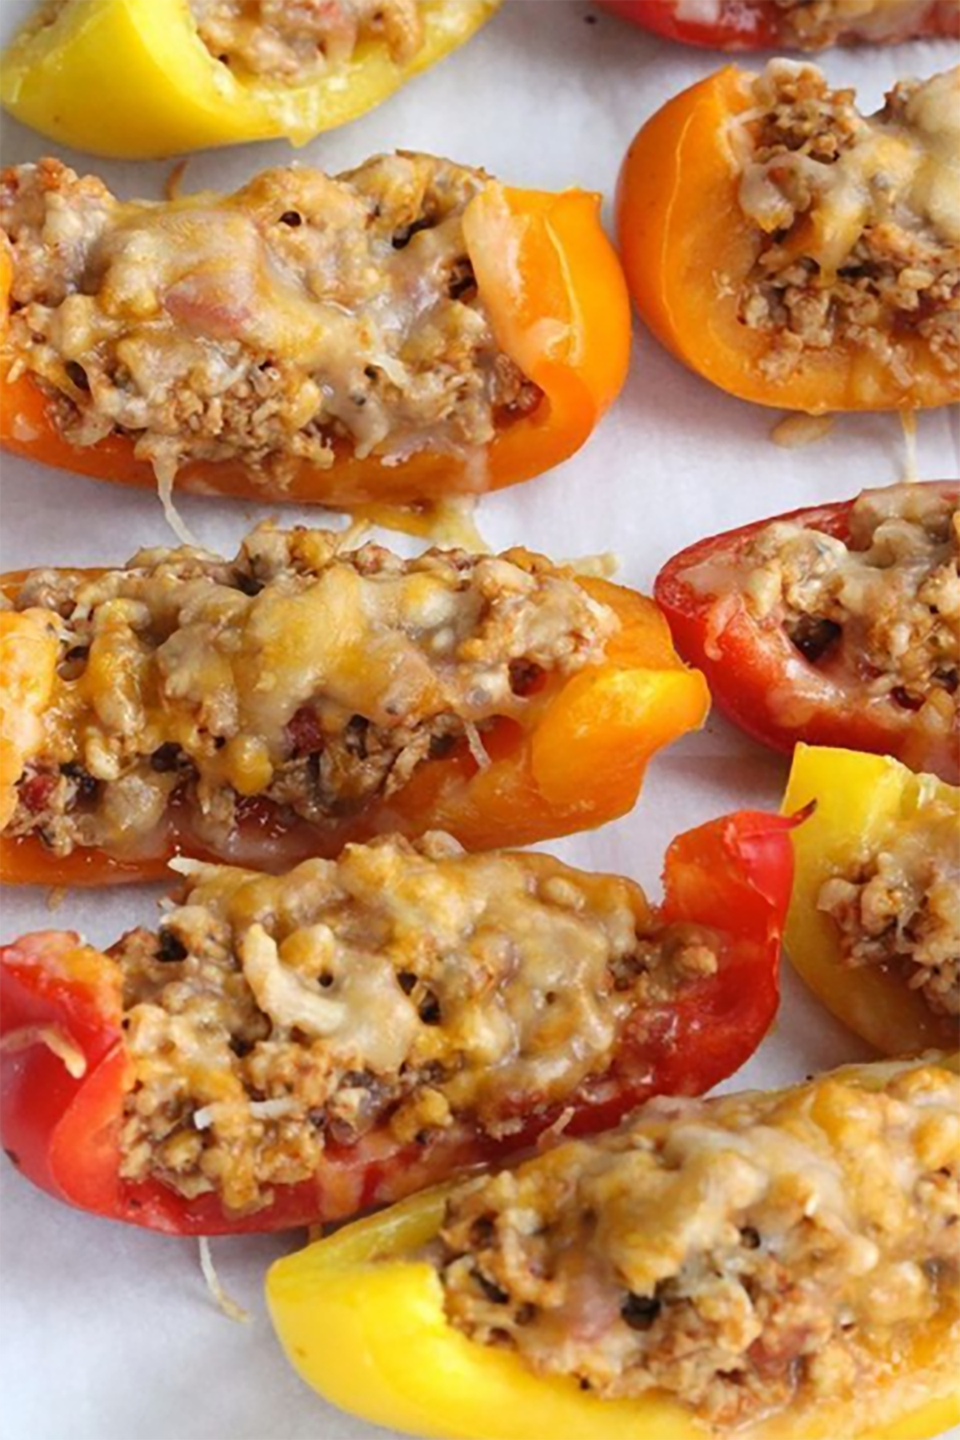 "<p><span class=""redactor-invisible-space"">Substitute tortilla chips for bell peppers, and you get the same delicious ingredients lathered on a healthy, nutrient-rich base.</span></p><p><strong>Get the recipe at <a href=""http://skinnyms.com/skinny-bell-pepper-nachos-recipe/"" rel=""nofollow noopener"" target=""_blank"" data-ylk=""slk:Skinny Ms"" class=""link rapid-noclick-resp"">Skinny Ms</a>.</strong></p>"